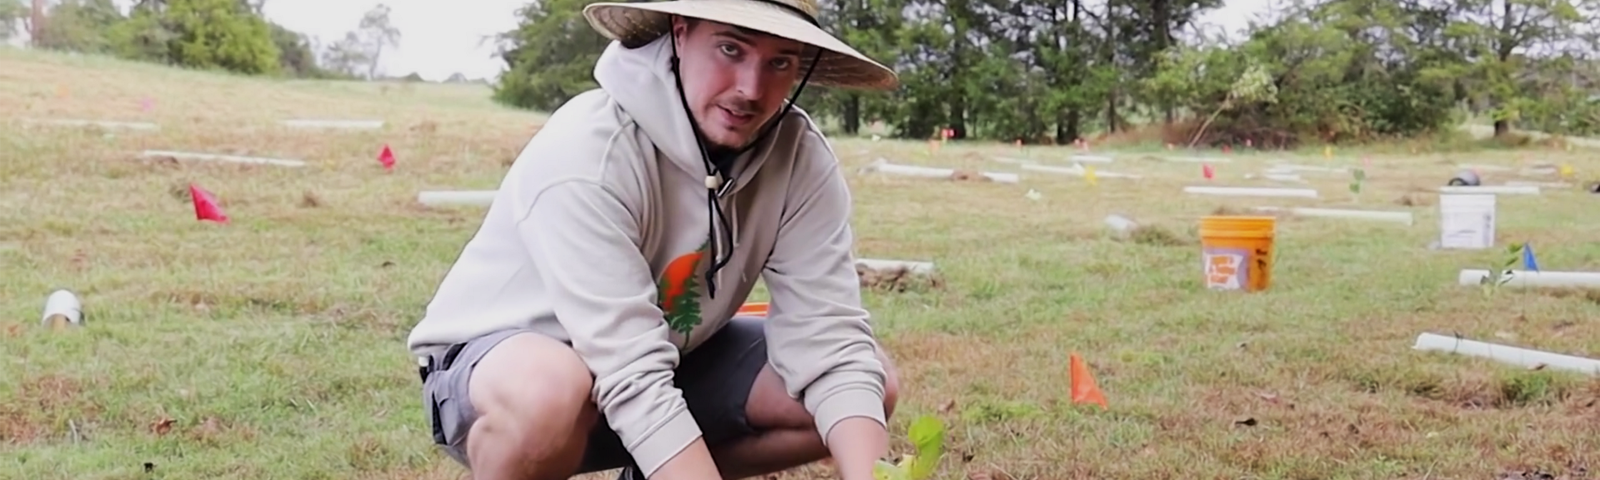 MrBeast sitting in a mostly-barren field with his hands around a recently-planted small tree.